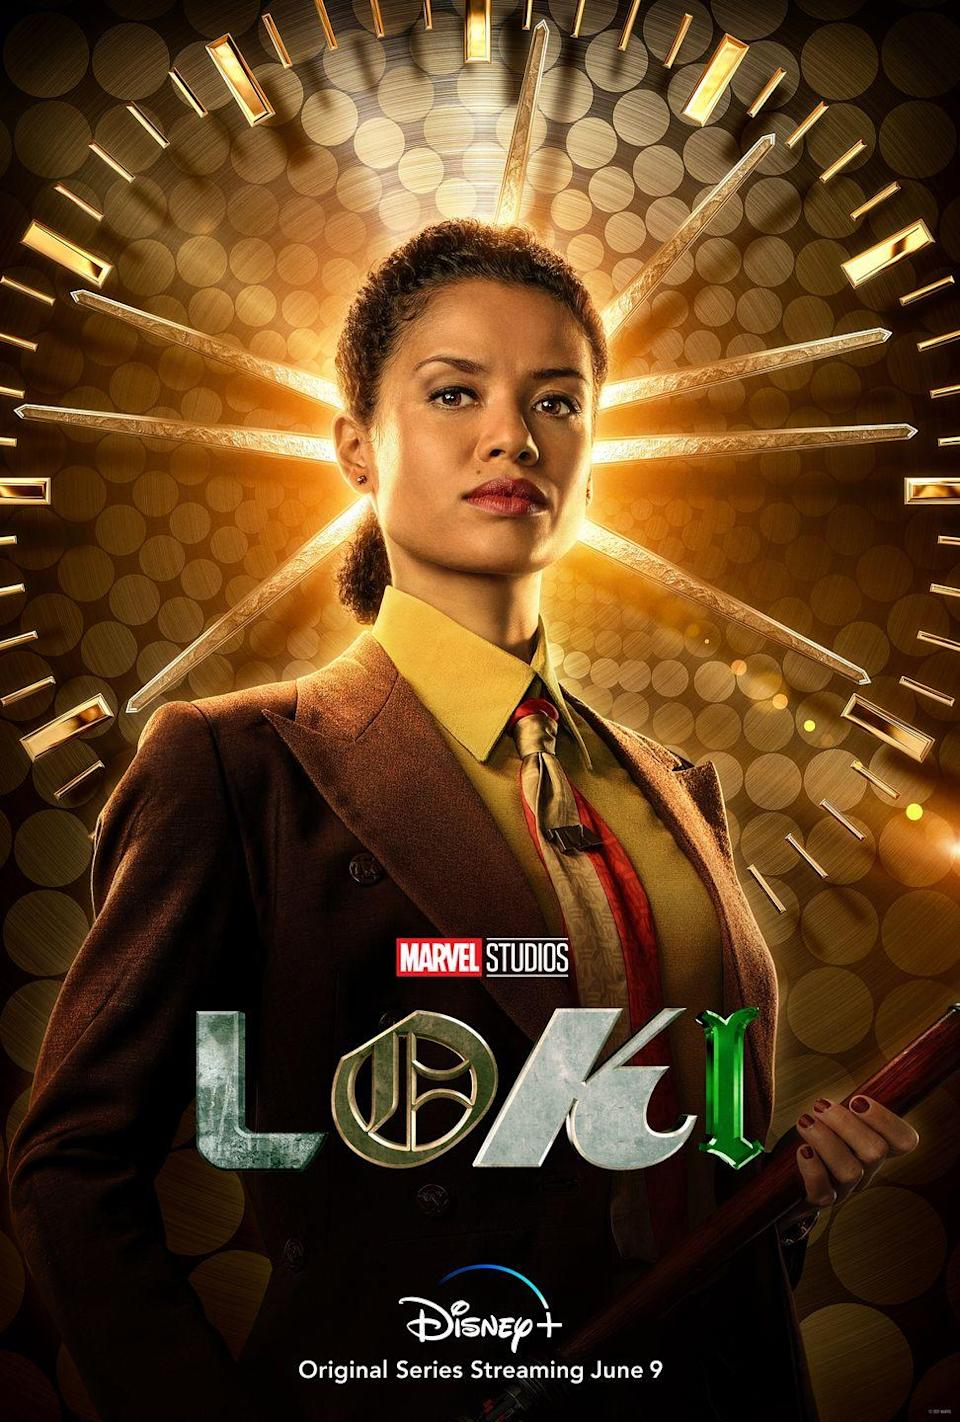 """<p><strong>Portrays:</strong> Ravonna Lexus Renslayer, a judge at the TVA </p><p><strong>Age:</strong> 38</p><p><strong>Instagram:</strong> <a href=""""https://www.instagram.com/gugumbatharaw"""" rel=""""nofollow noopener"""" target=""""_blank"""" data-ylk=""""slk:@gugumbatharaw"""" class=""""link rapid-noclick-resp"""">@gugumbatharaw</a></p><p><strong>Fun fact: </strong>She's starred alongside great actors like Oprah Winfrey <em>(A Wrinkle in Time</em>) and Tom Hanks (<em>Larry Crowne</em>), and she's a global ambassador for the United Nations High Commissioner for Refugees (UNHCR). </p>"""